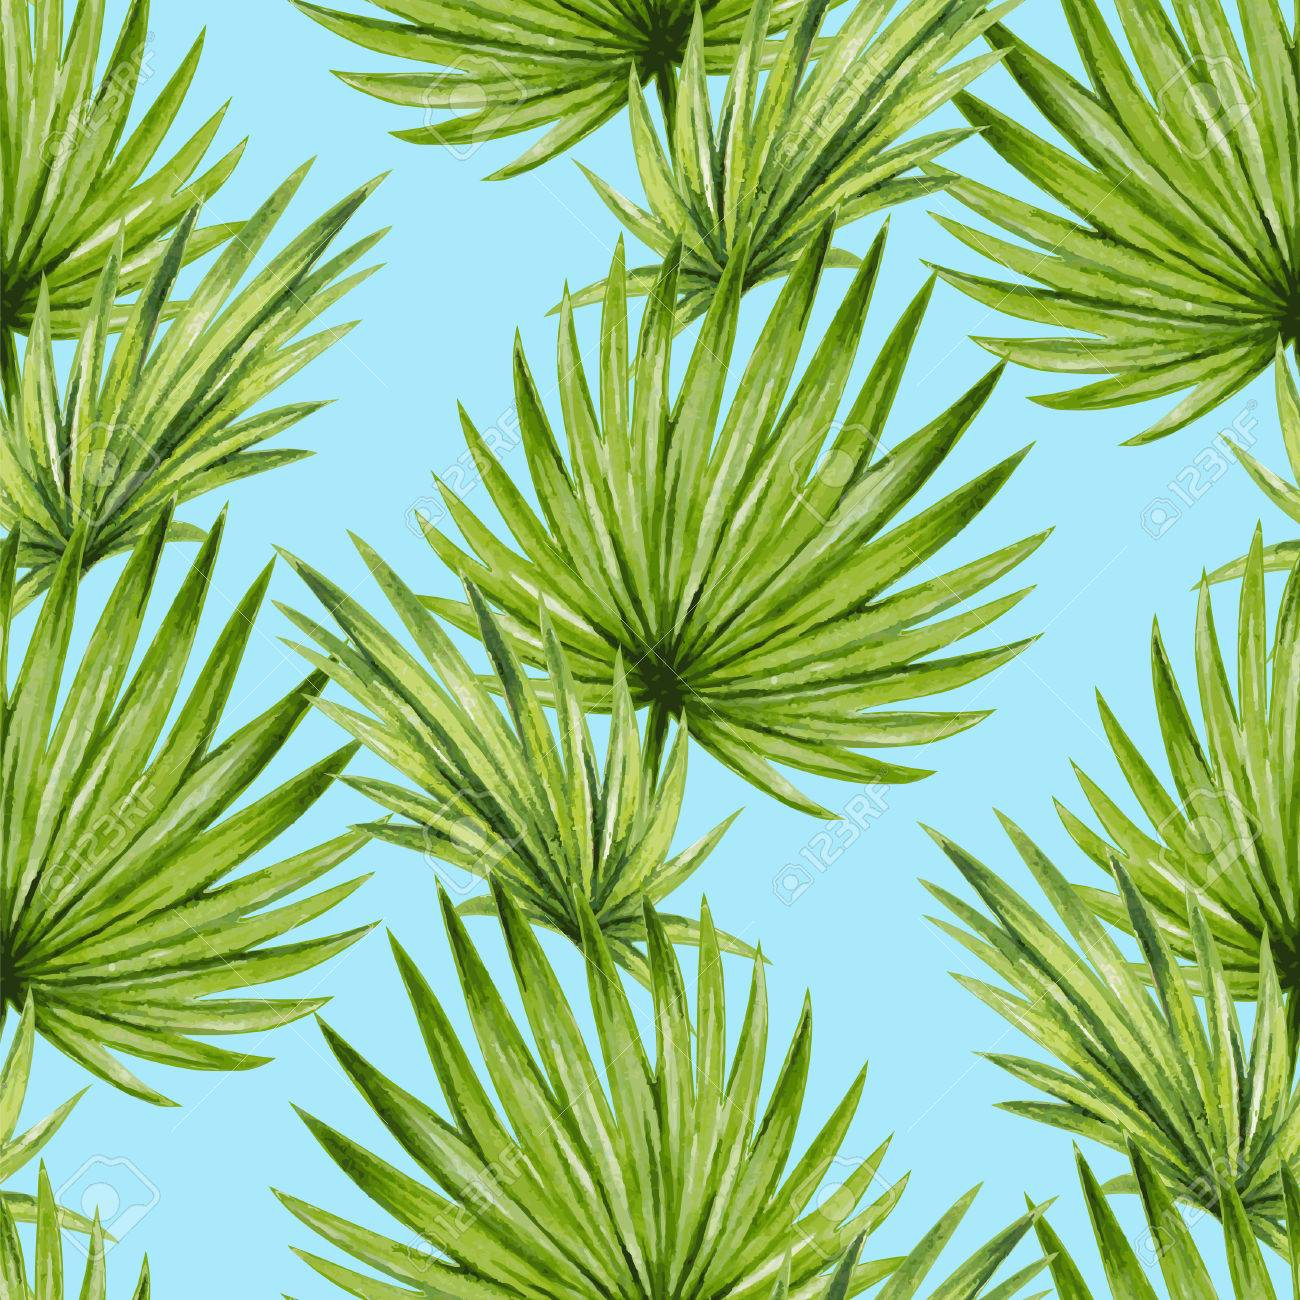 Watercolor tropical palm leaves seamless pattern - 45007992